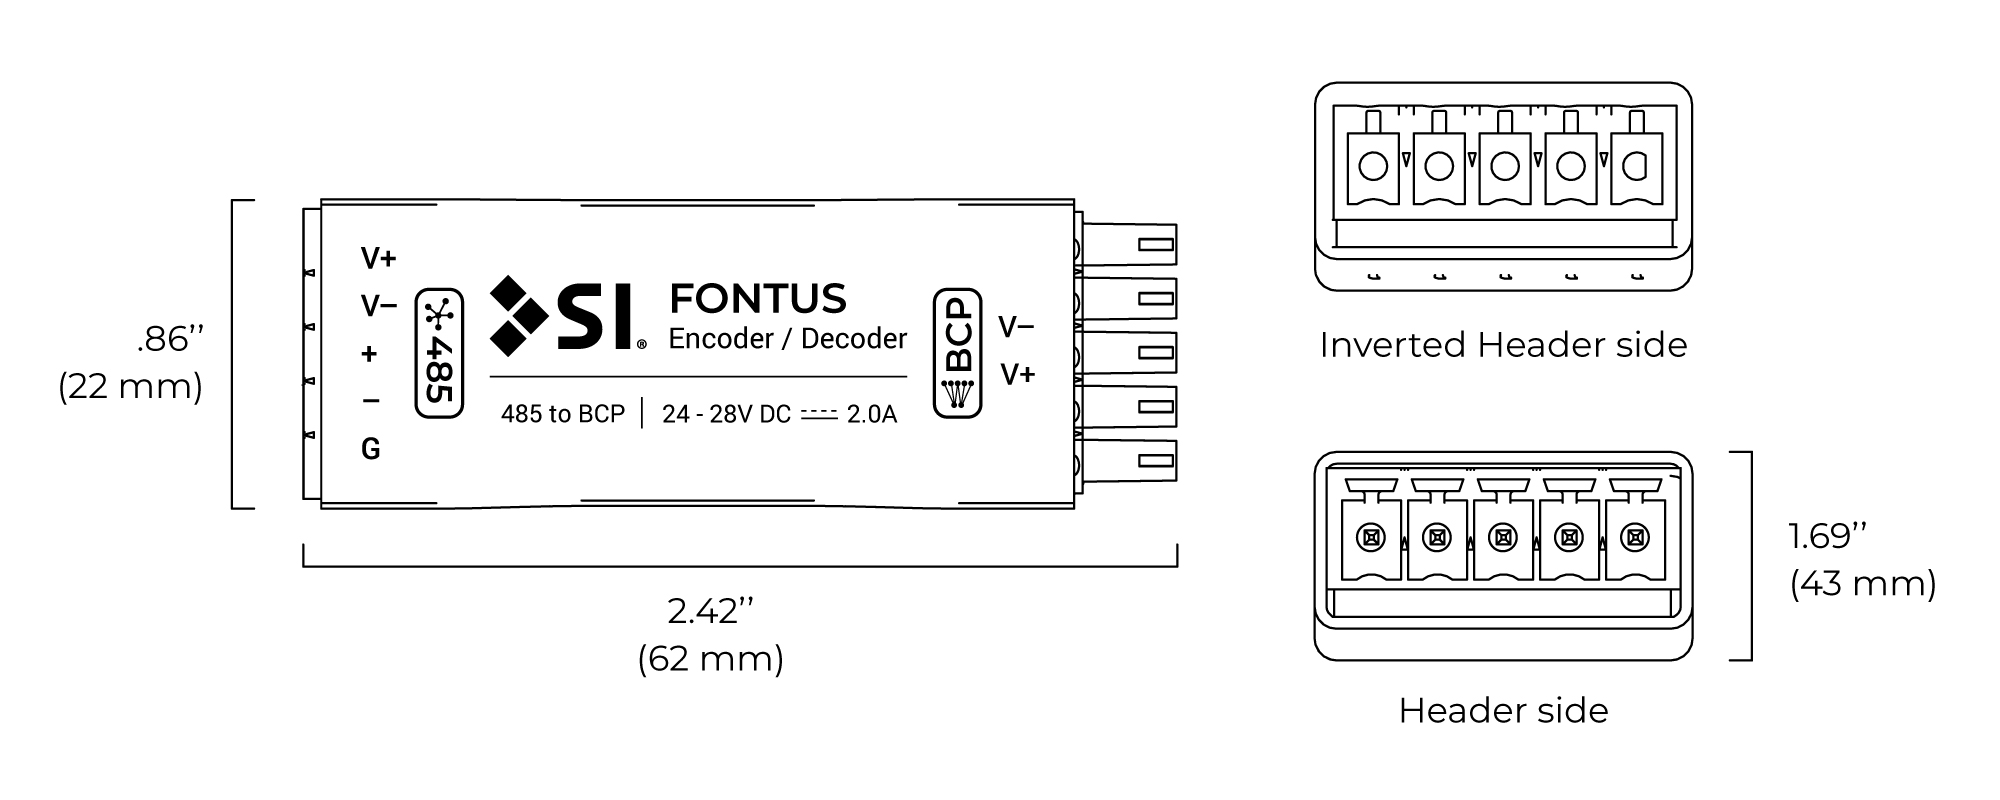 Fontus spec drawing